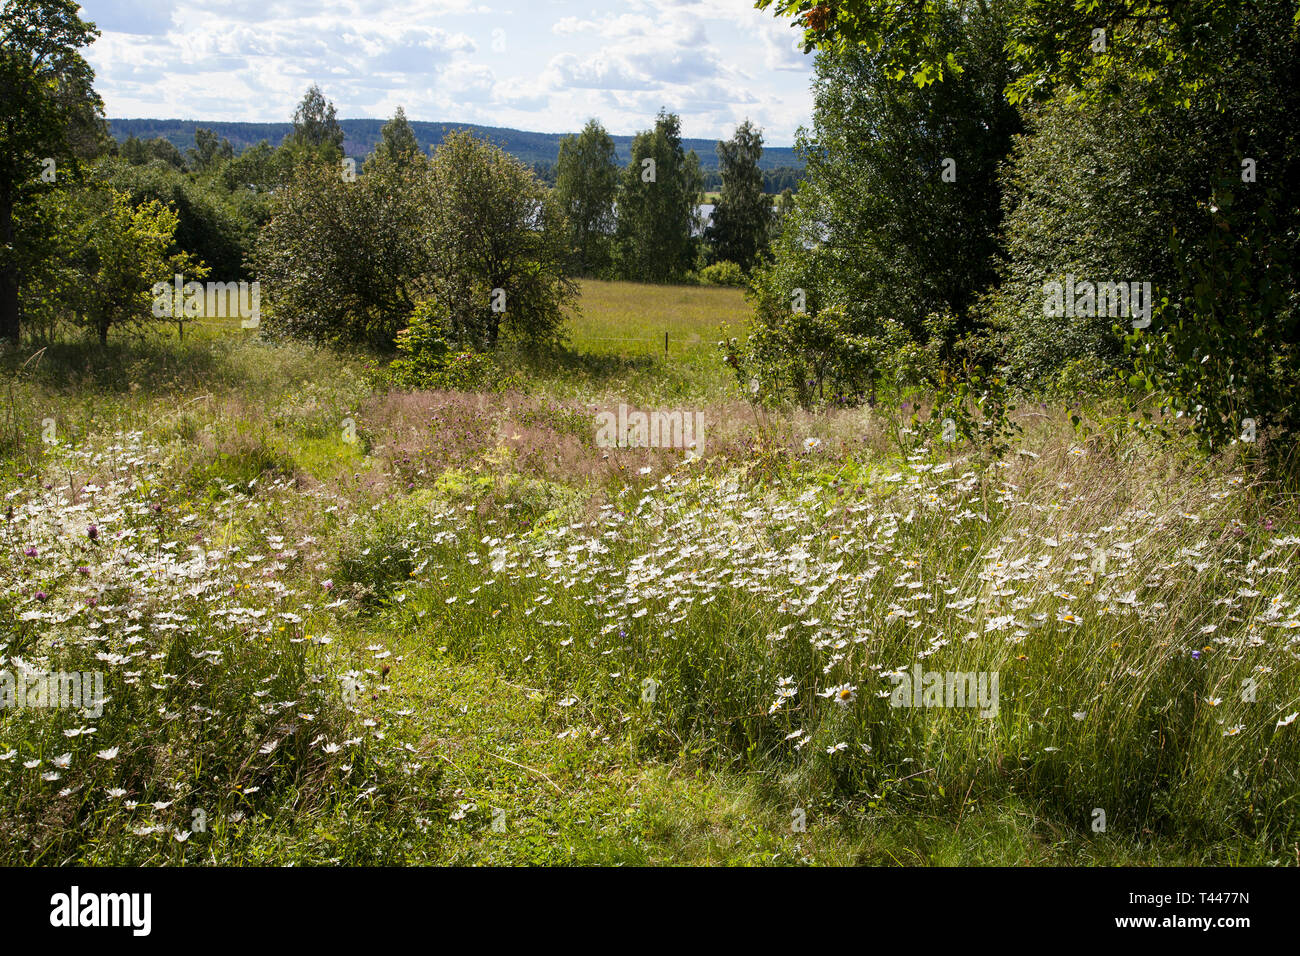 Meadow with wild summer flowers in Dalarna Sweden - Stock Image